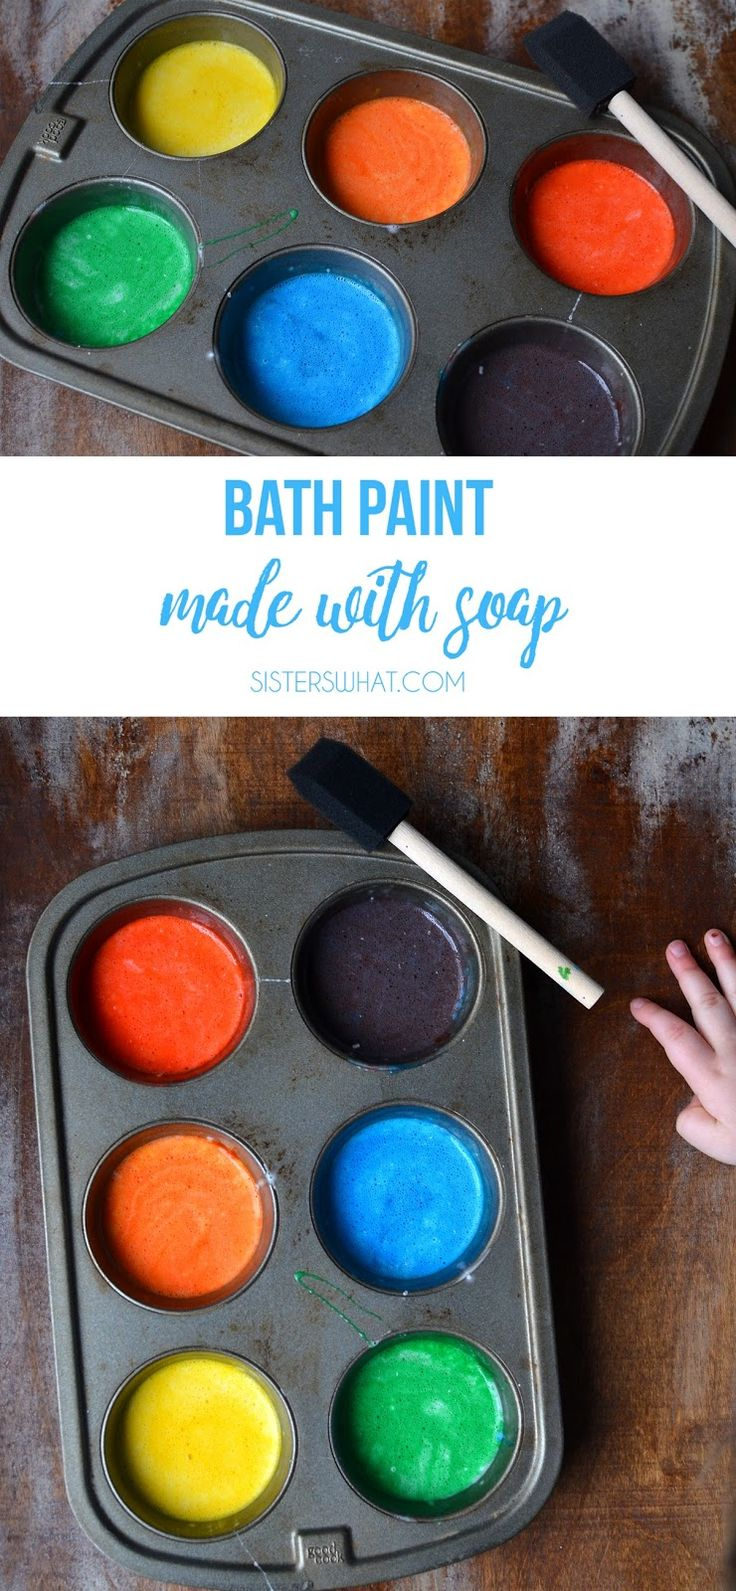 Bath paint perfect for rainy days or summer break and it's made with soap so easy clean up!